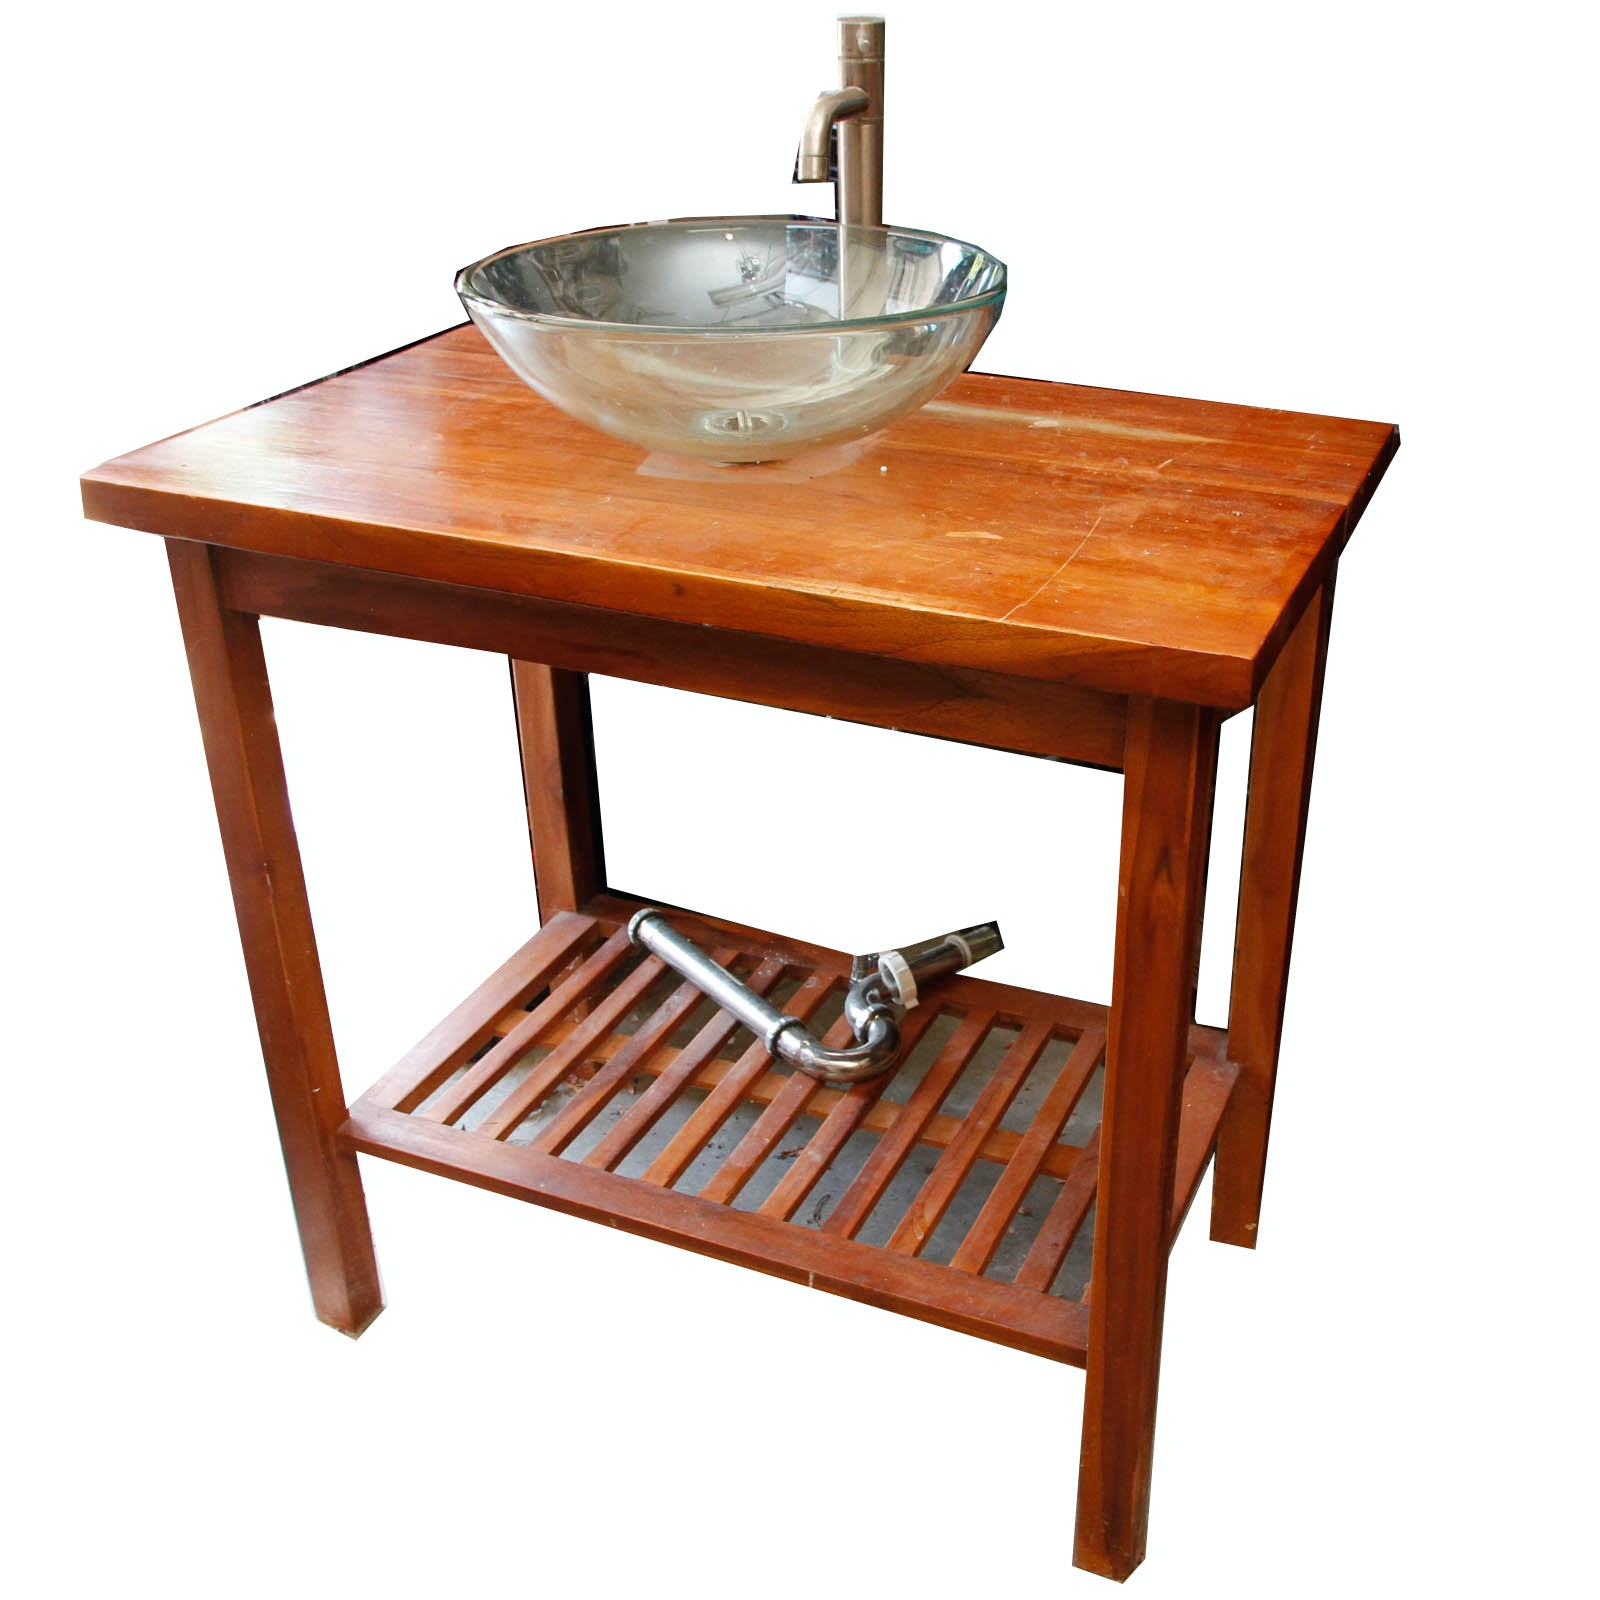 Bathroom Vanities Used vintage bathroom vanity | used bathroom vanities for sale : ebth